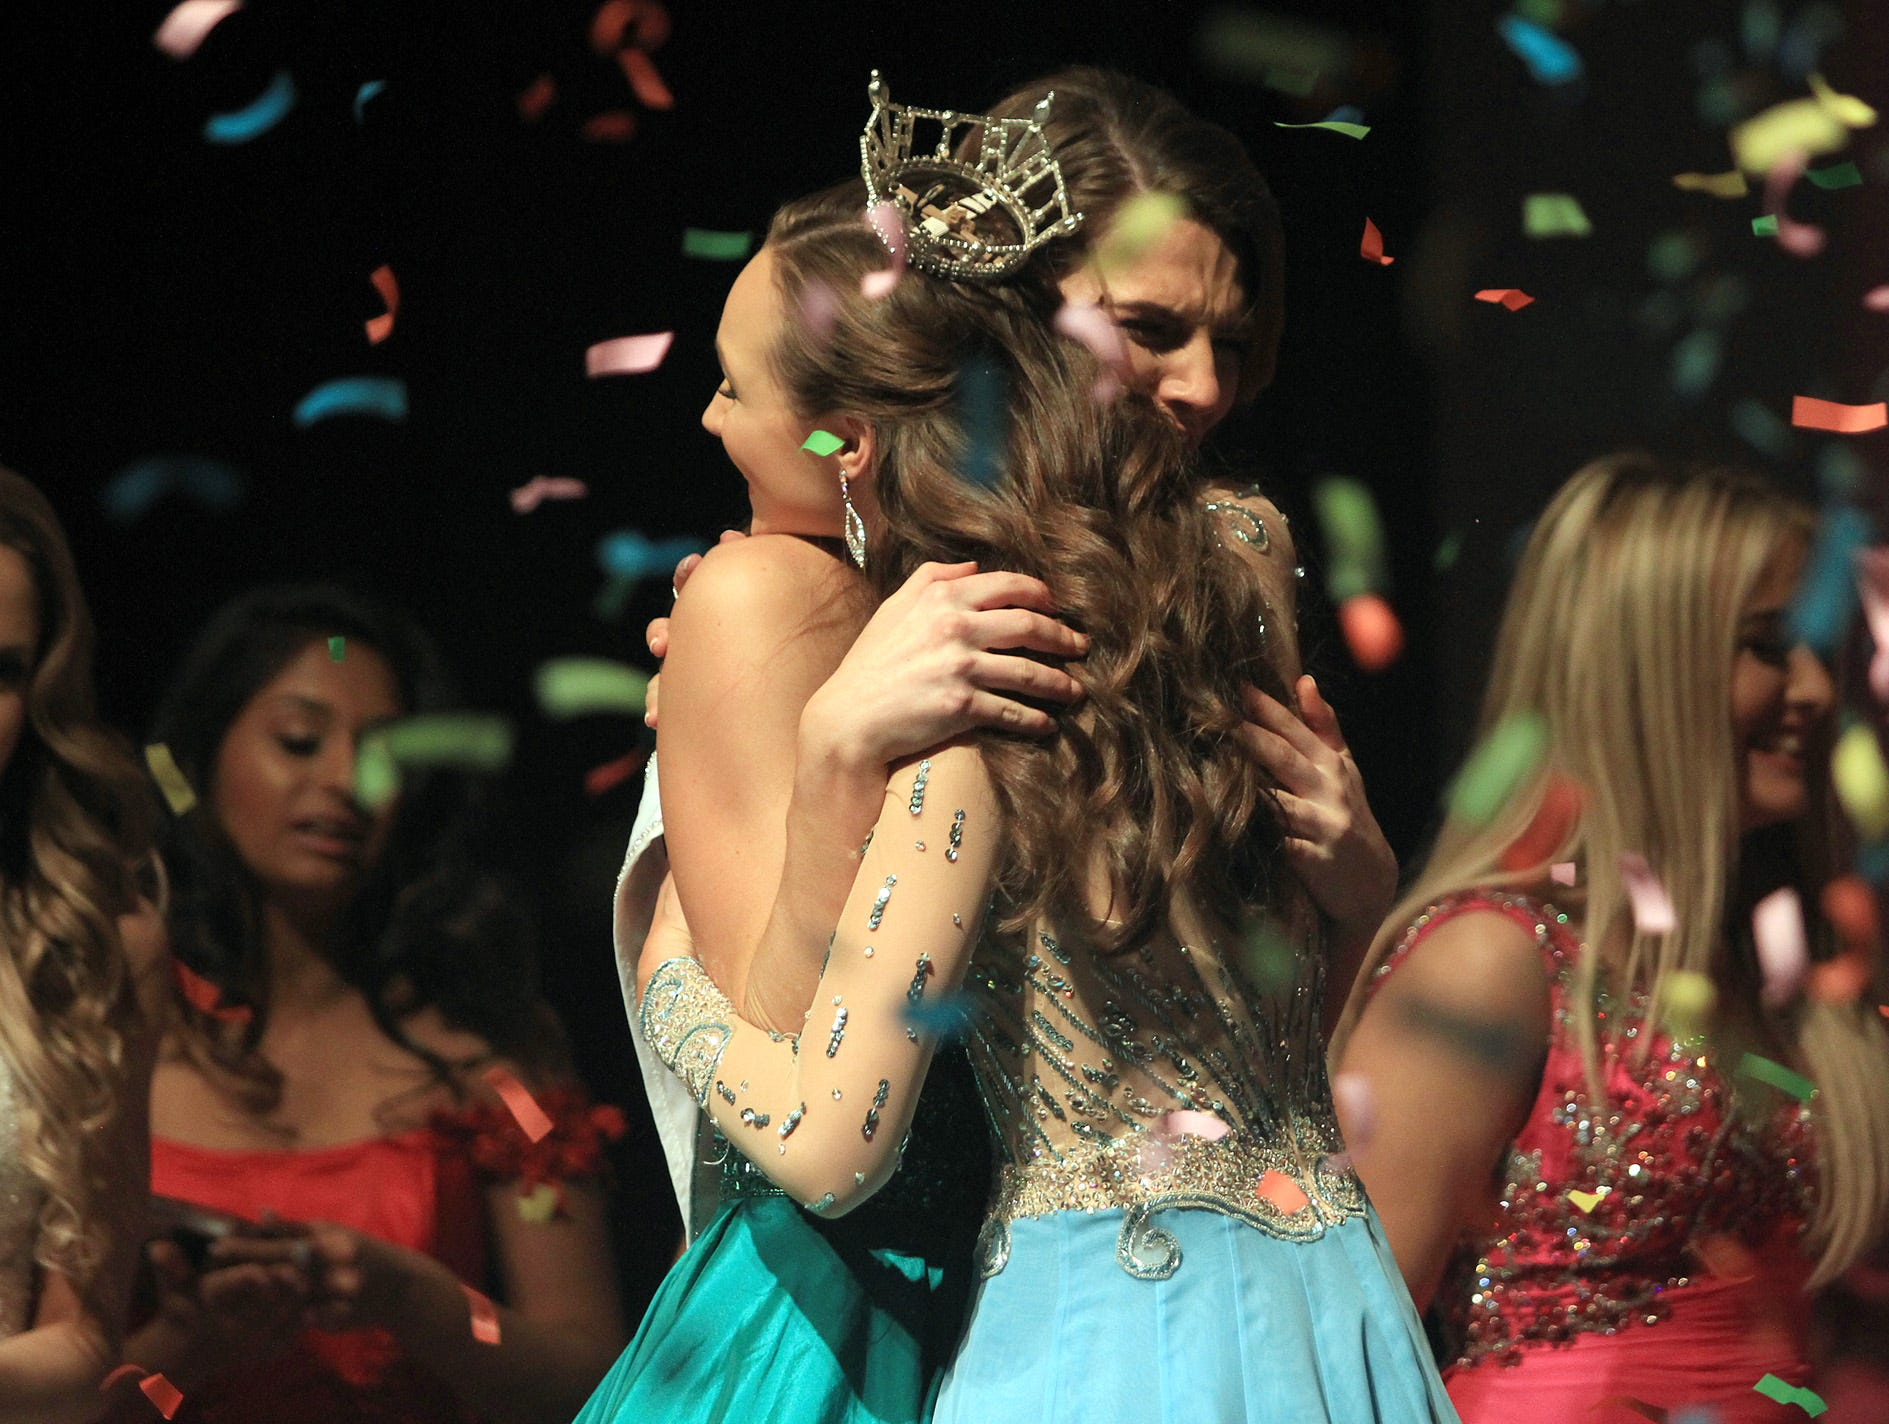 The confetti flies as Taylor Parsons gets a hug from Mary Humphreys after being crowned Miss Tennessee's Outstanding Teen 2019 in Gallatin, TN on Saturday, March 30, 2019.